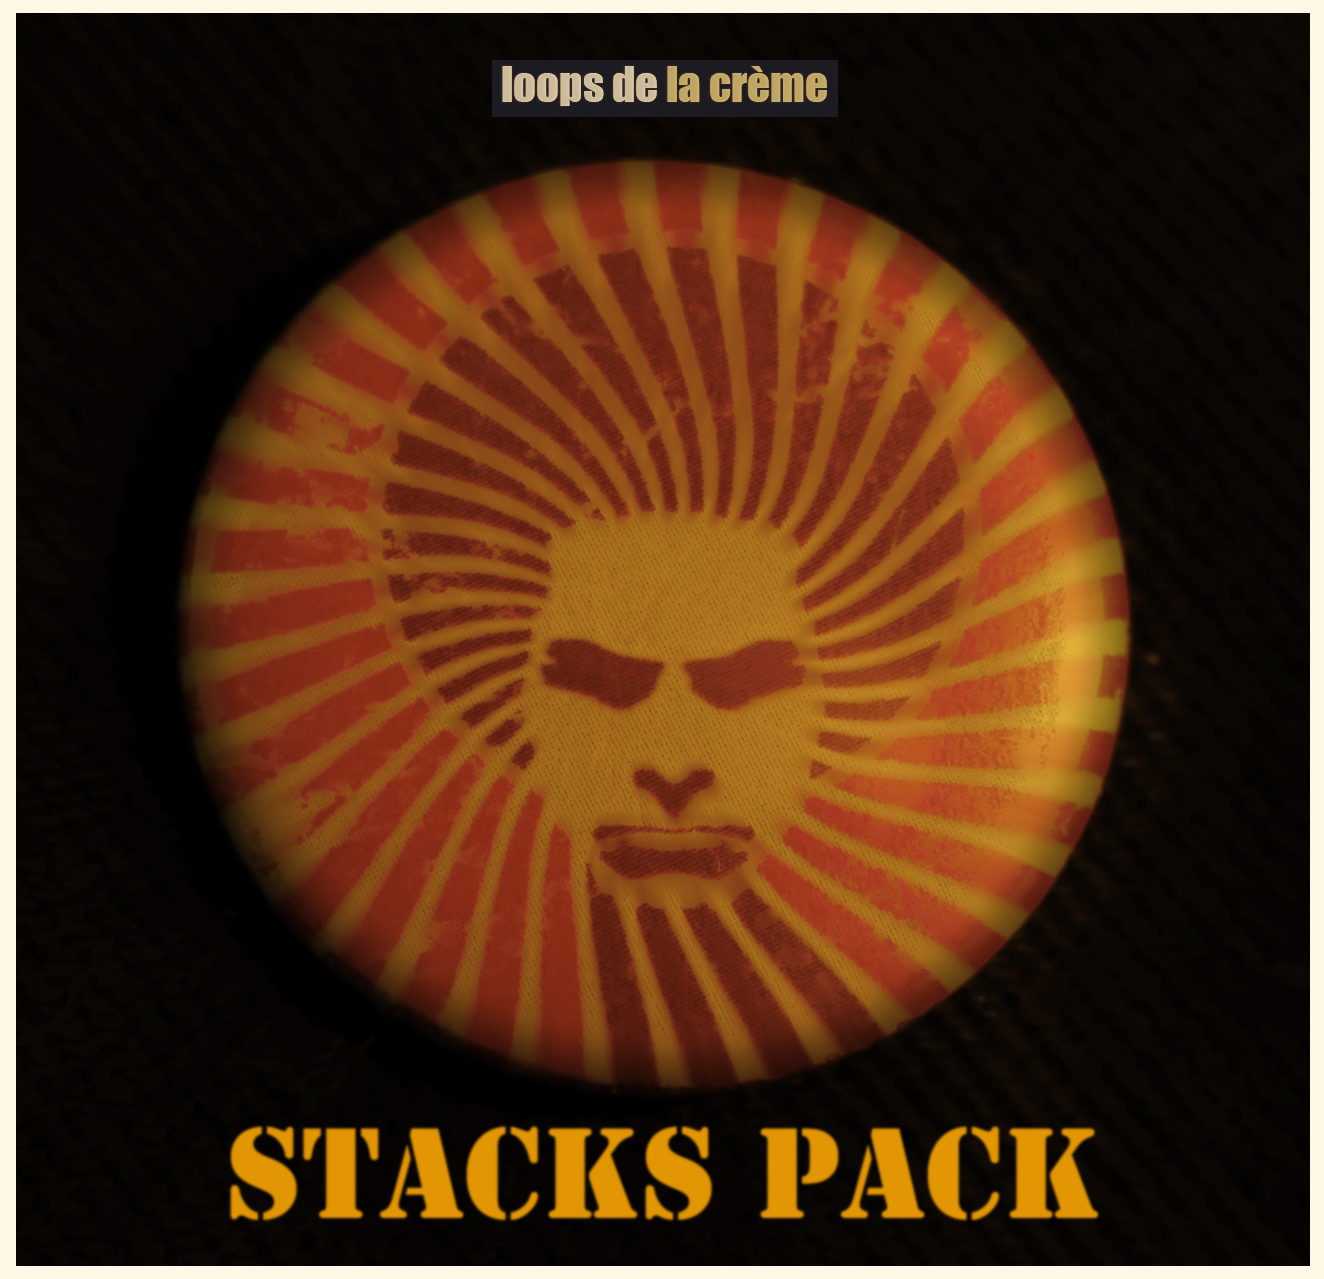 stacks pack_FINAL!!.jpg